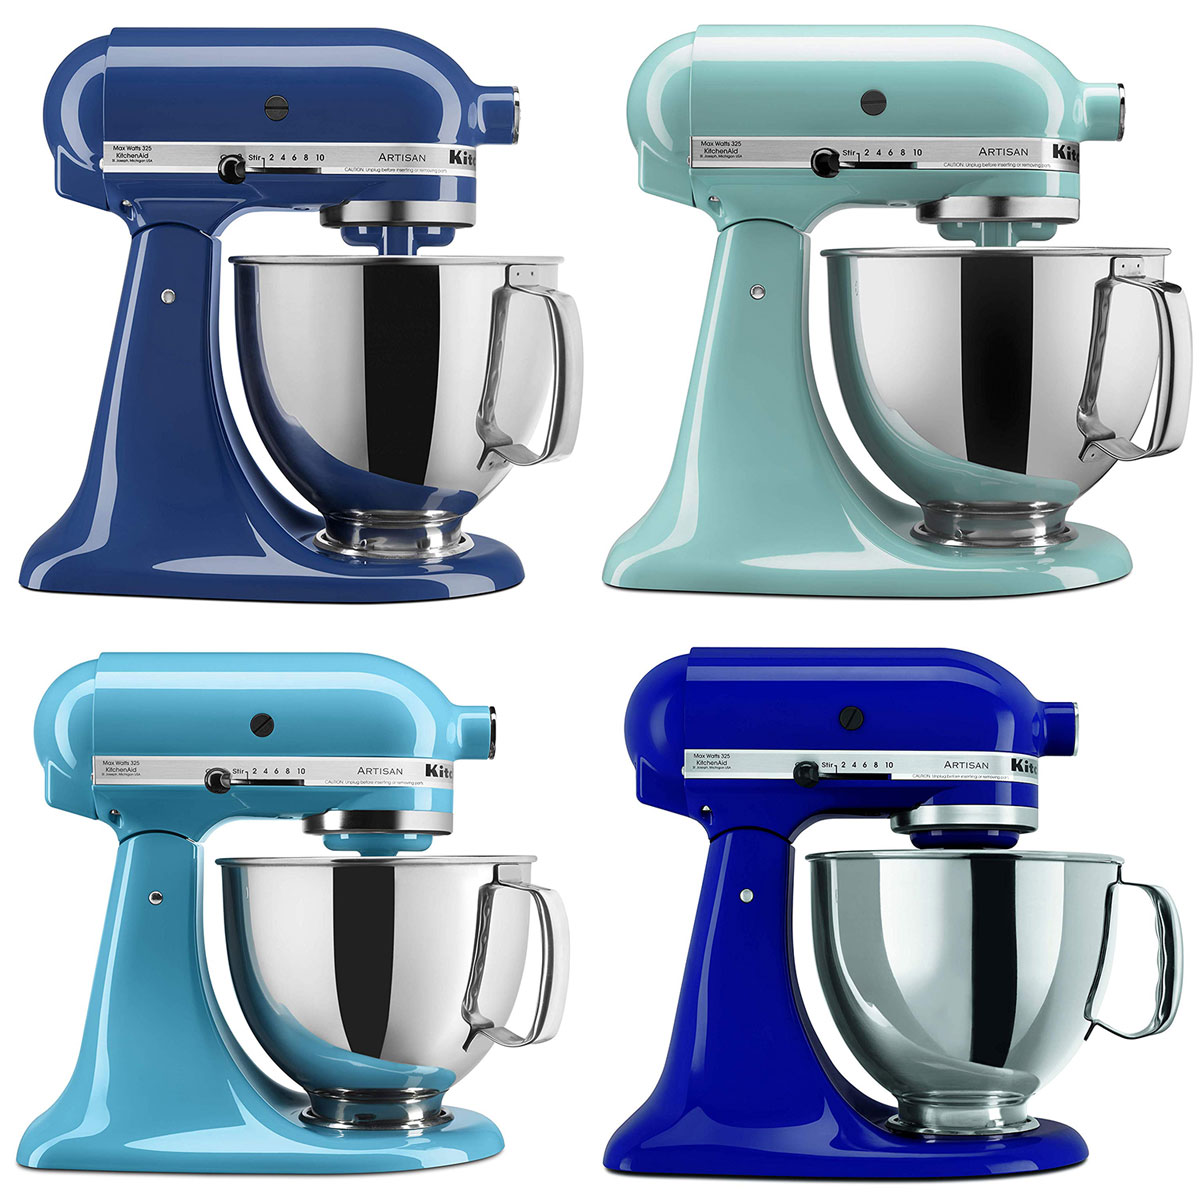 These KitchenAid Stand Mixer Colors Are 30% Off Right Now on Amazon